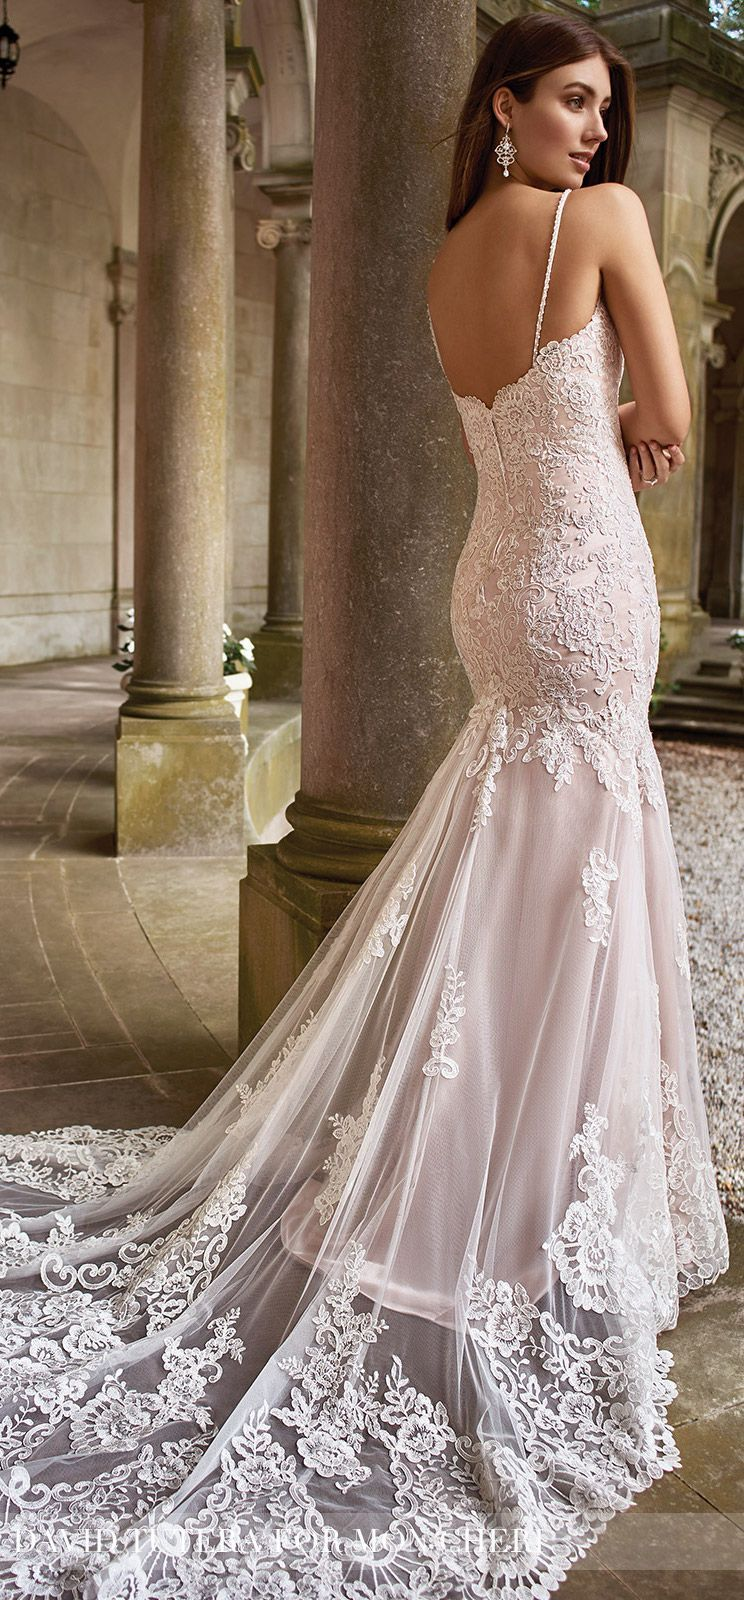 Blush Wedding Dress By David Tutera For Mon Cheri Spring 2017 One